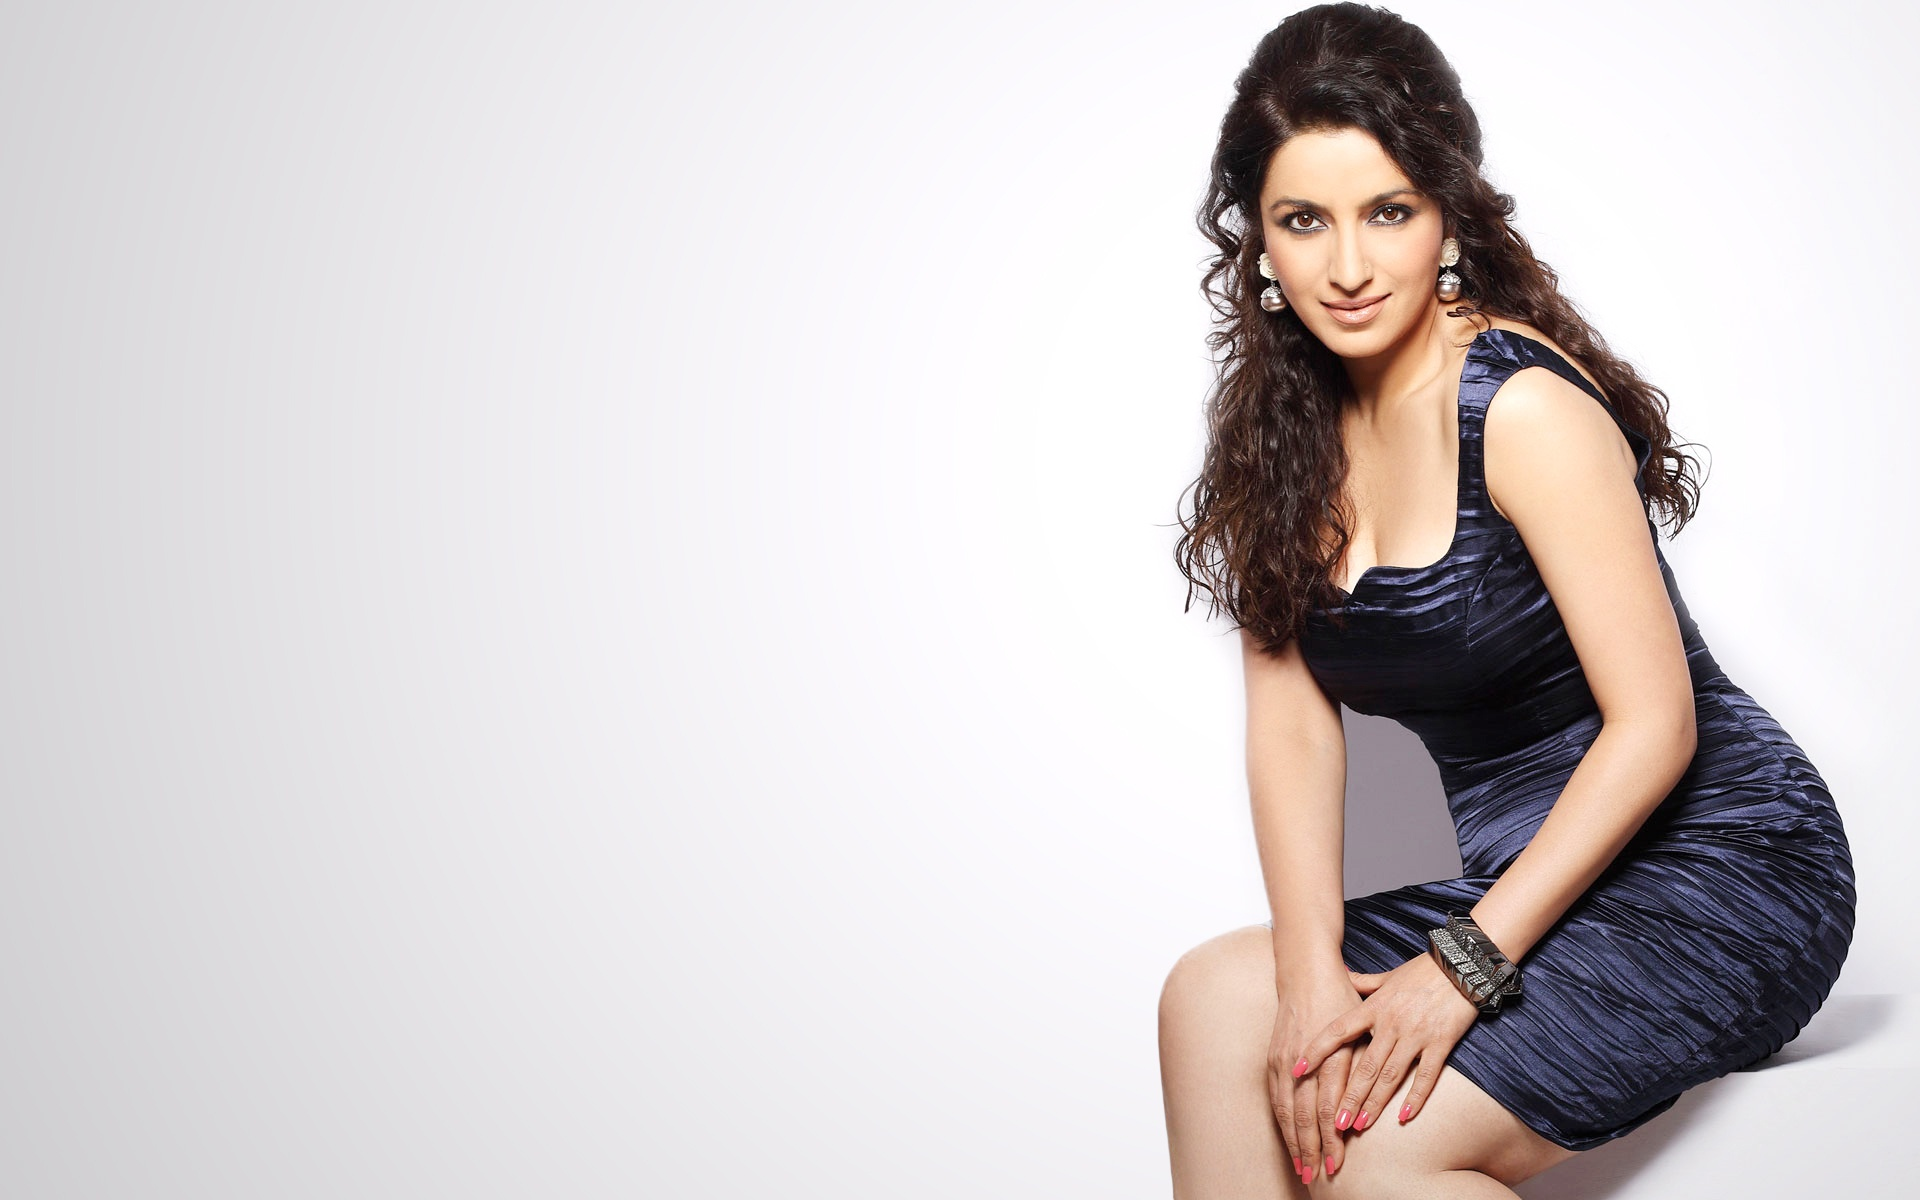 Wallpapers Bollywood Actress 1920x1200